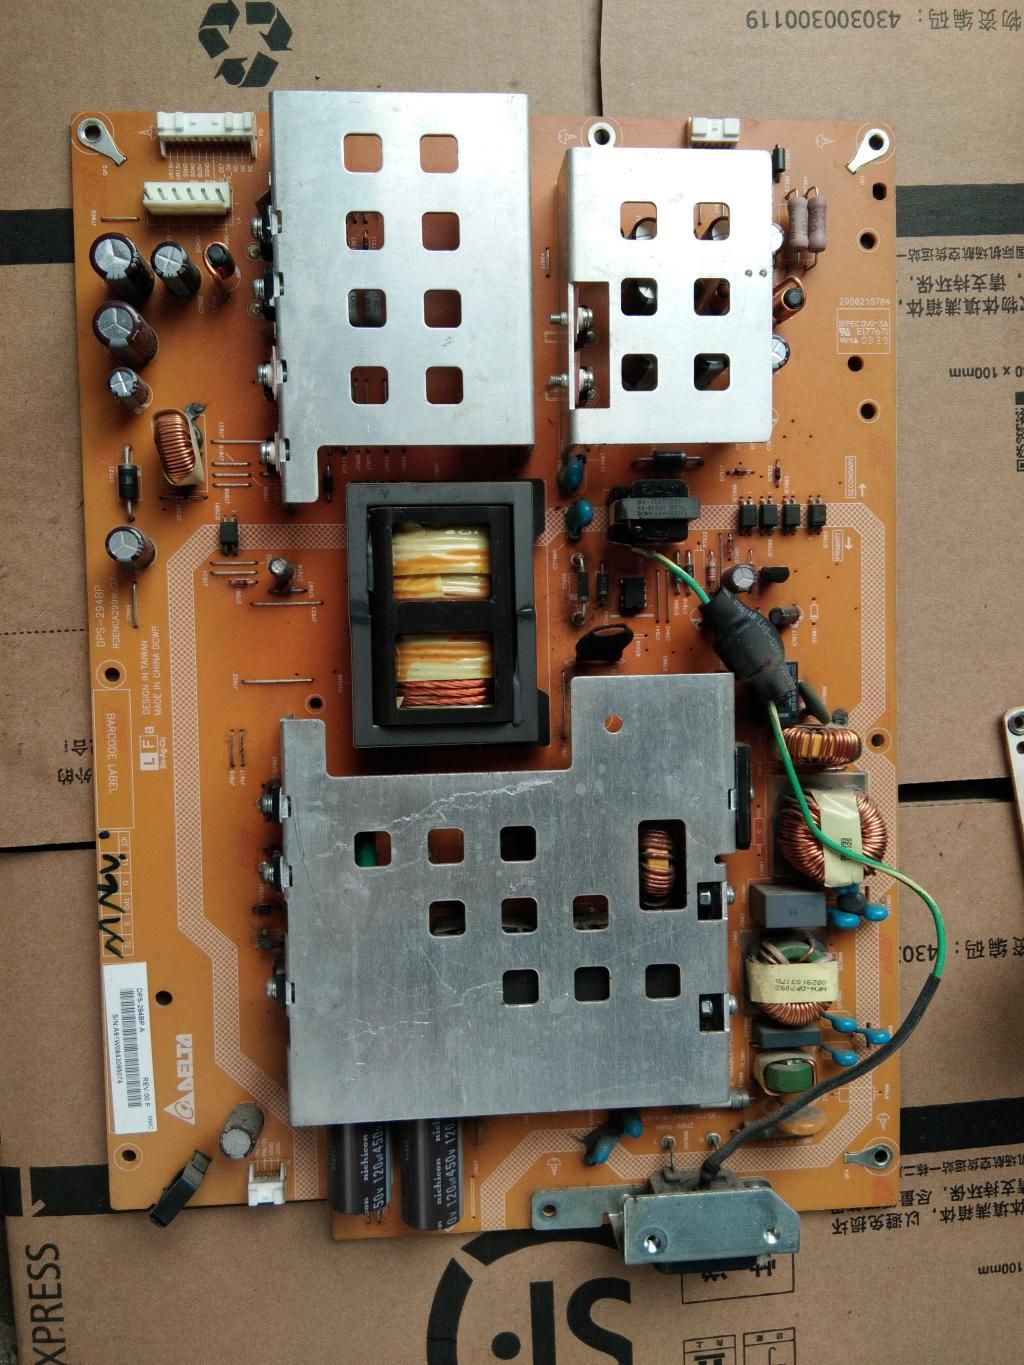 Sharp Rdenca299wjqz Dps 294bp Power Supply Board For Lcd 42 46 5 Schematic Diagram Showing The Various Parts Of A Laptop Computer 6700 Free Shipping Global Source Largest Led And Plasma Tv Pc Server